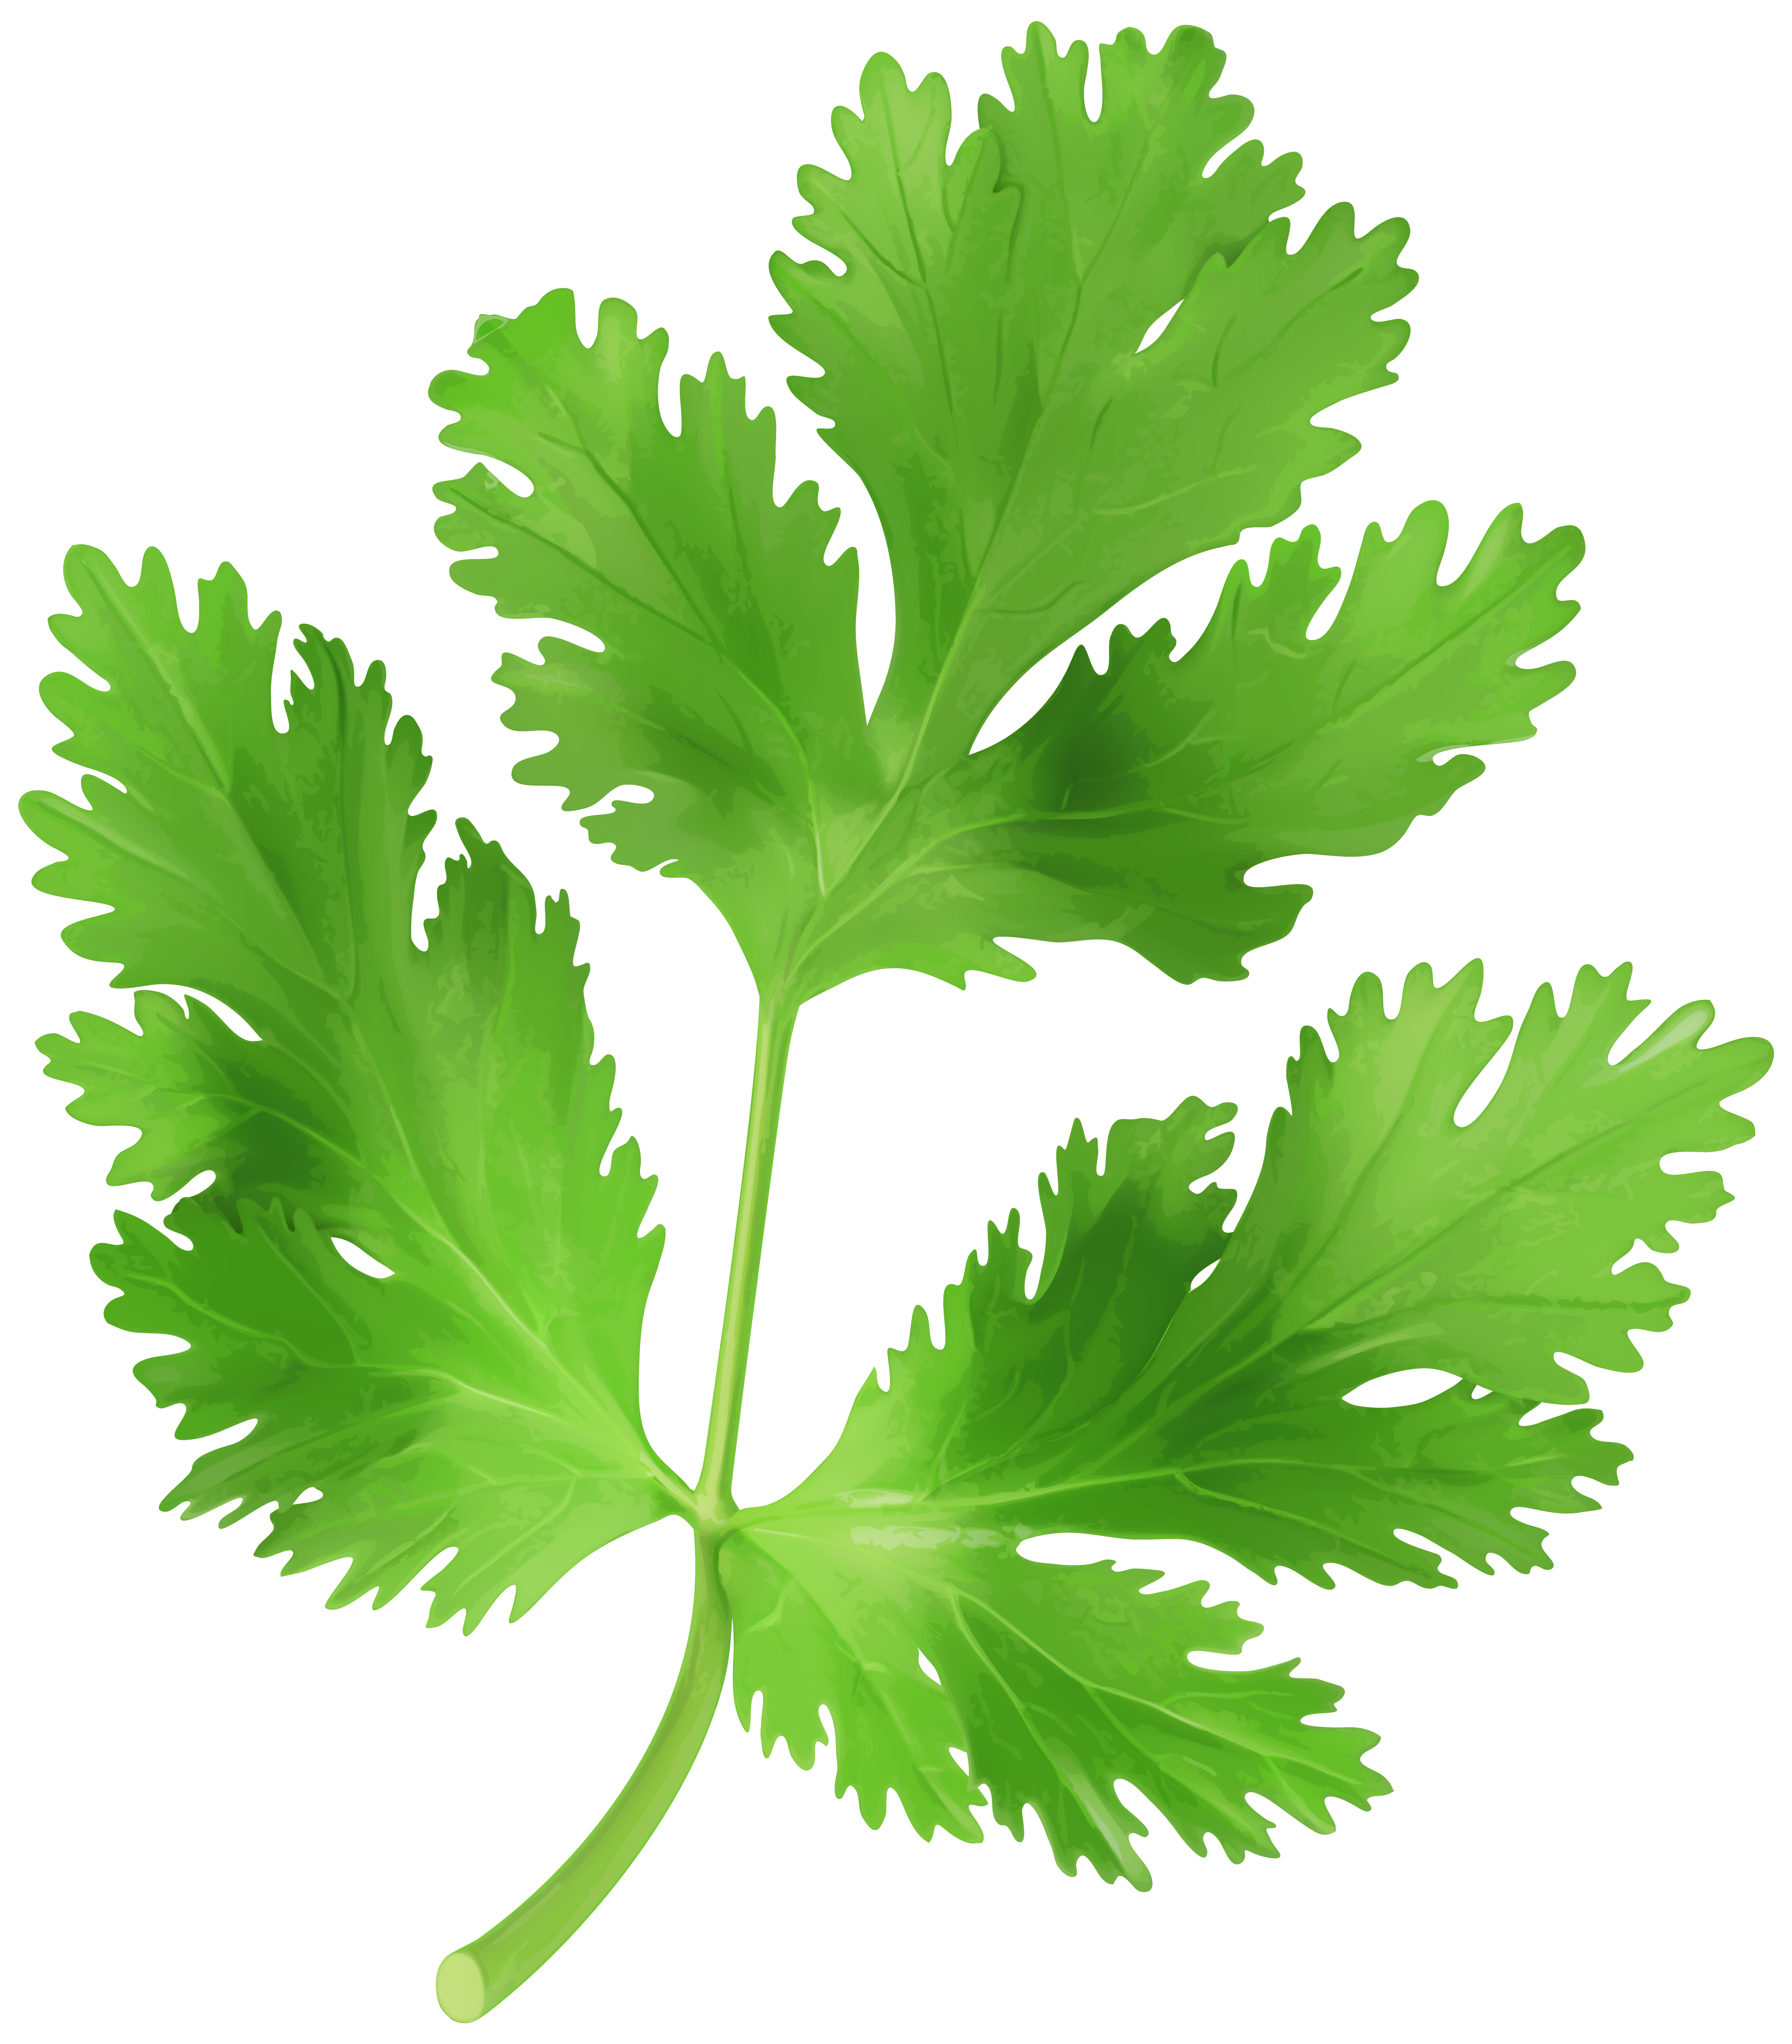 Parsley clipart Gallery Art Image Parsley size